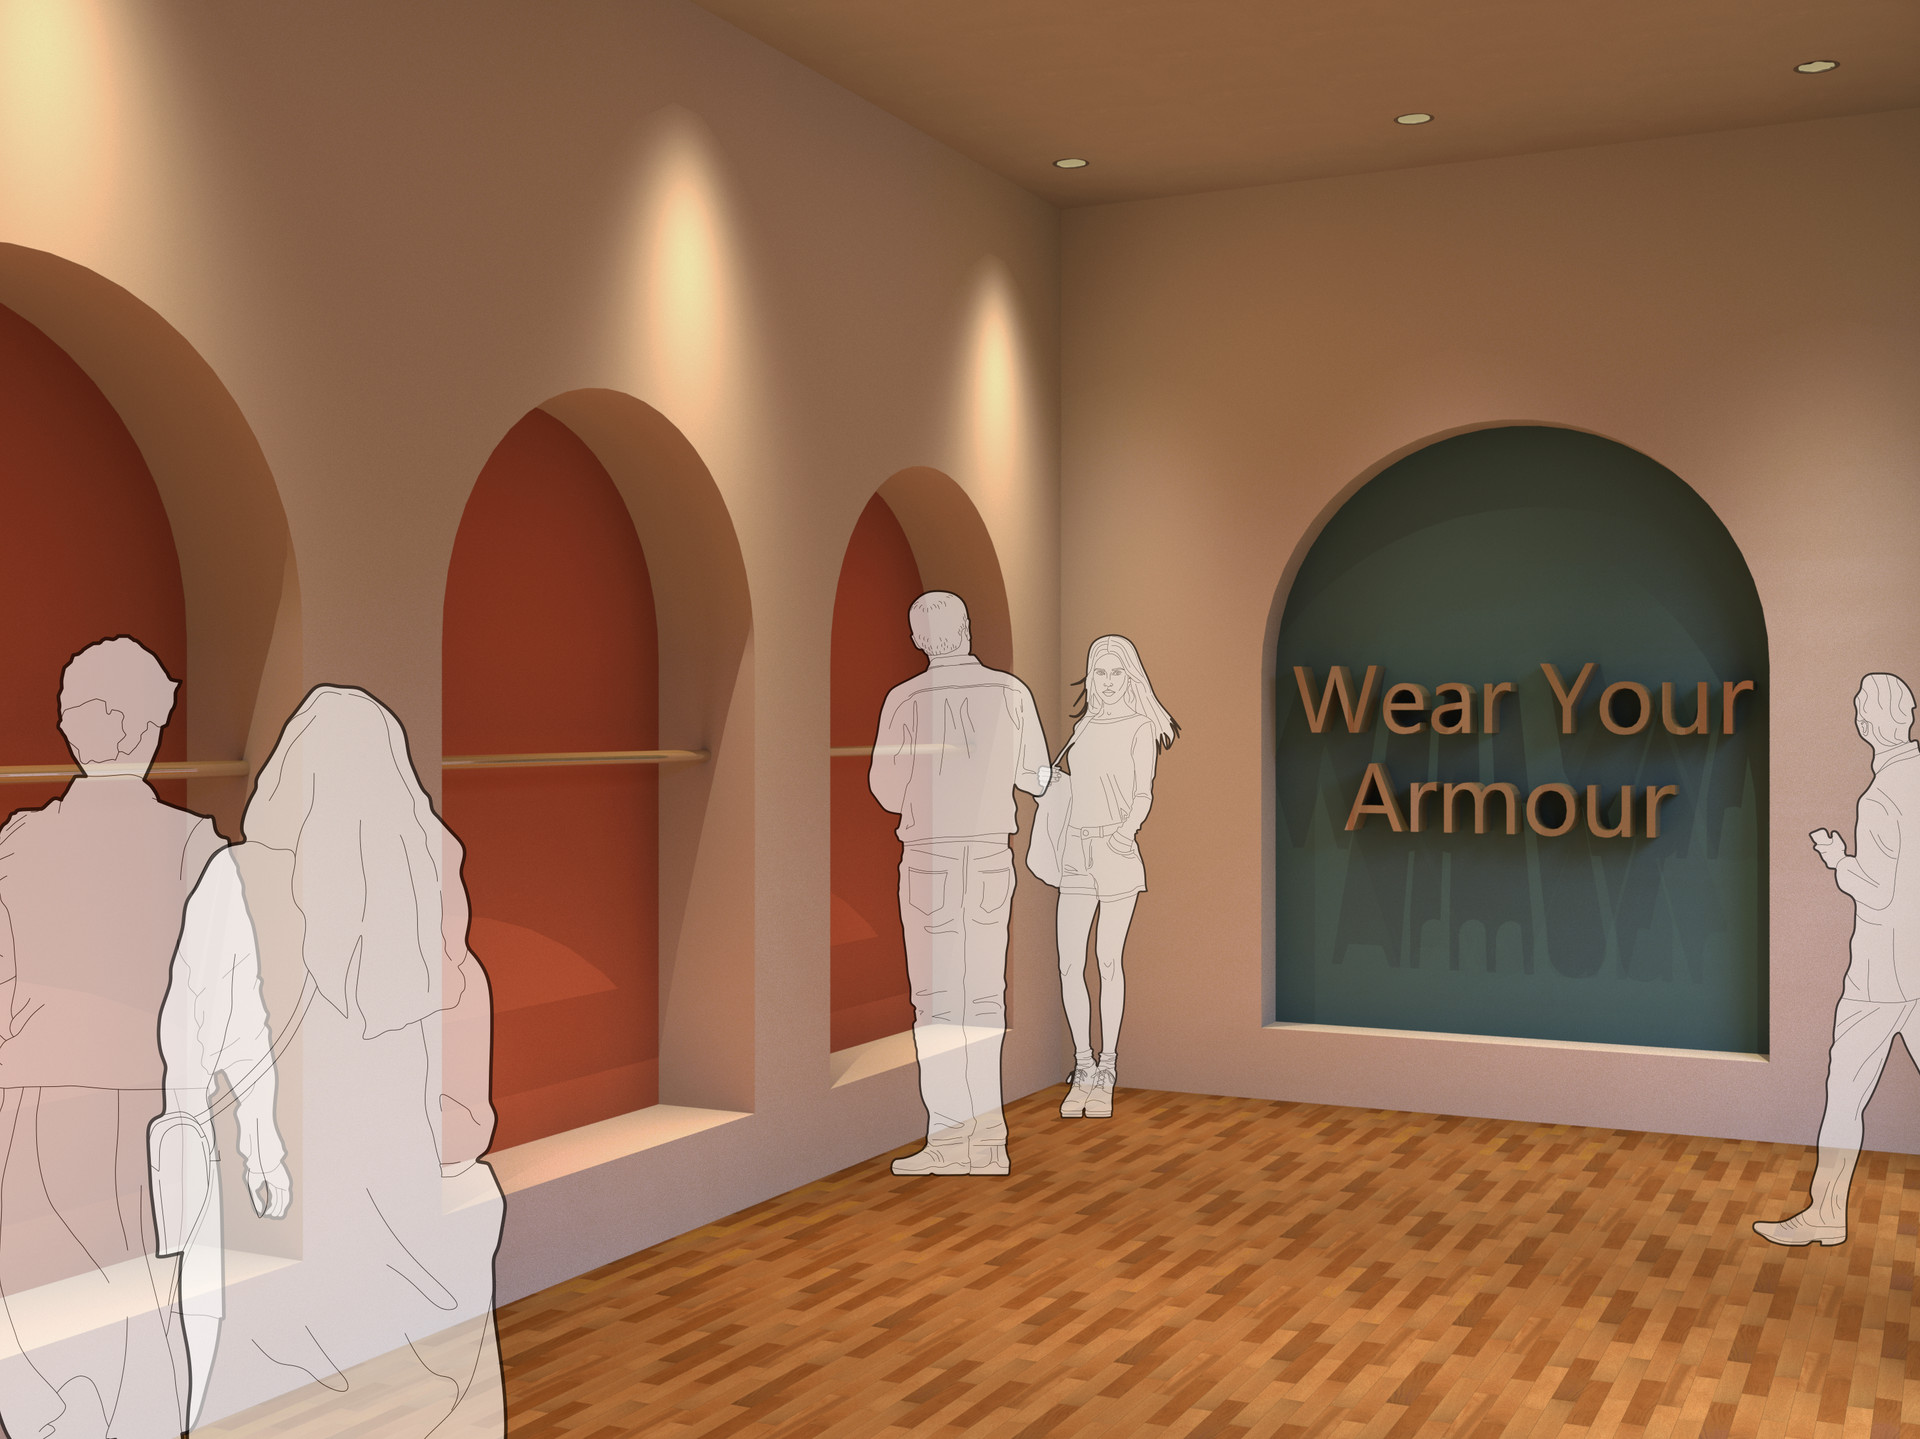 The clothing section takes the least amount of space, but invites customers to complete their jewellery purchases with an accompanies new outfit.